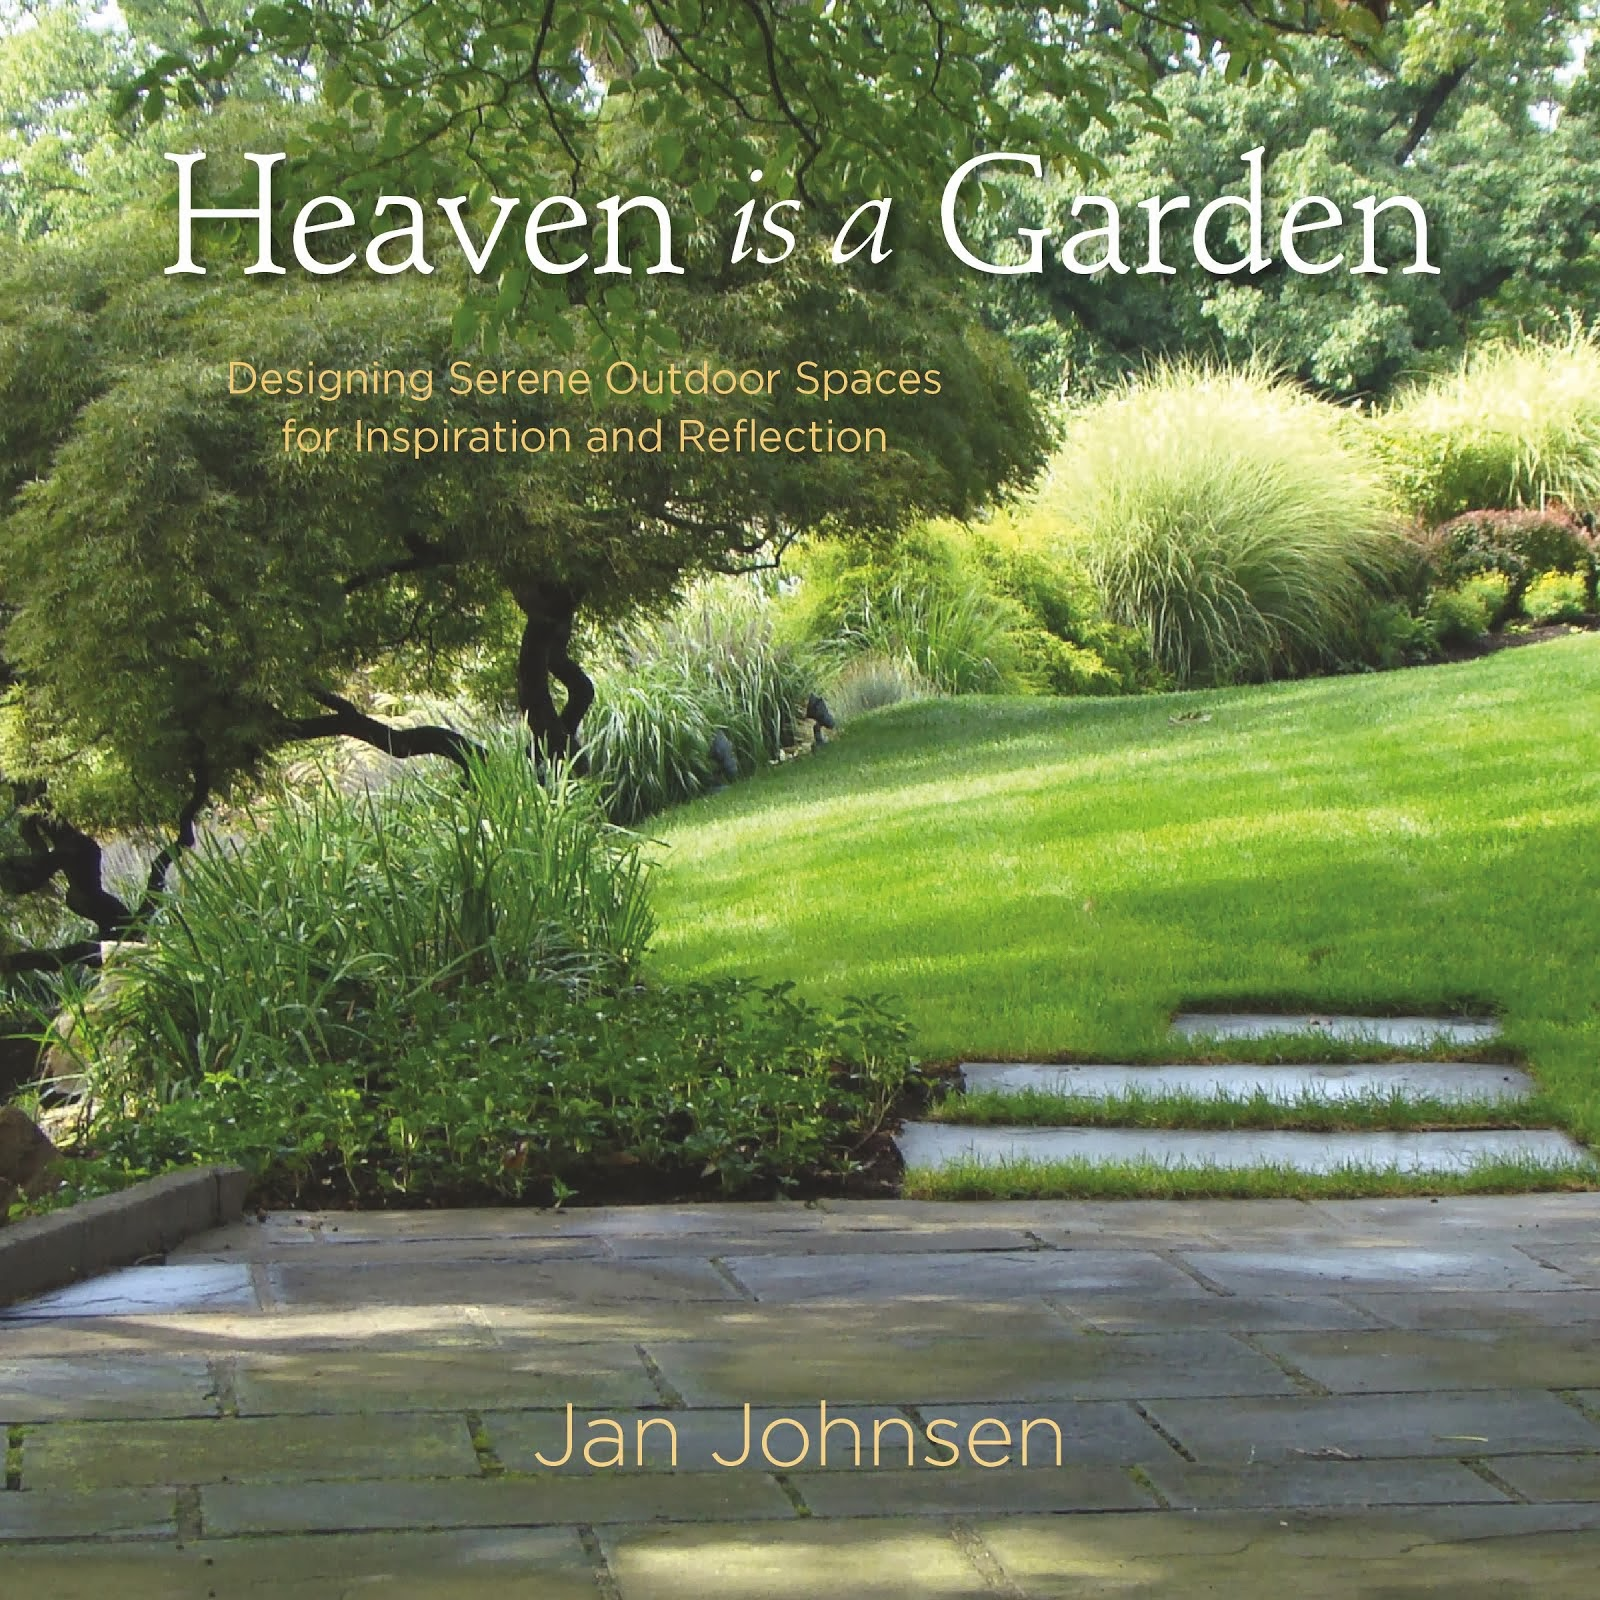 Heaven is a Garden- a new/old look at Garden Design